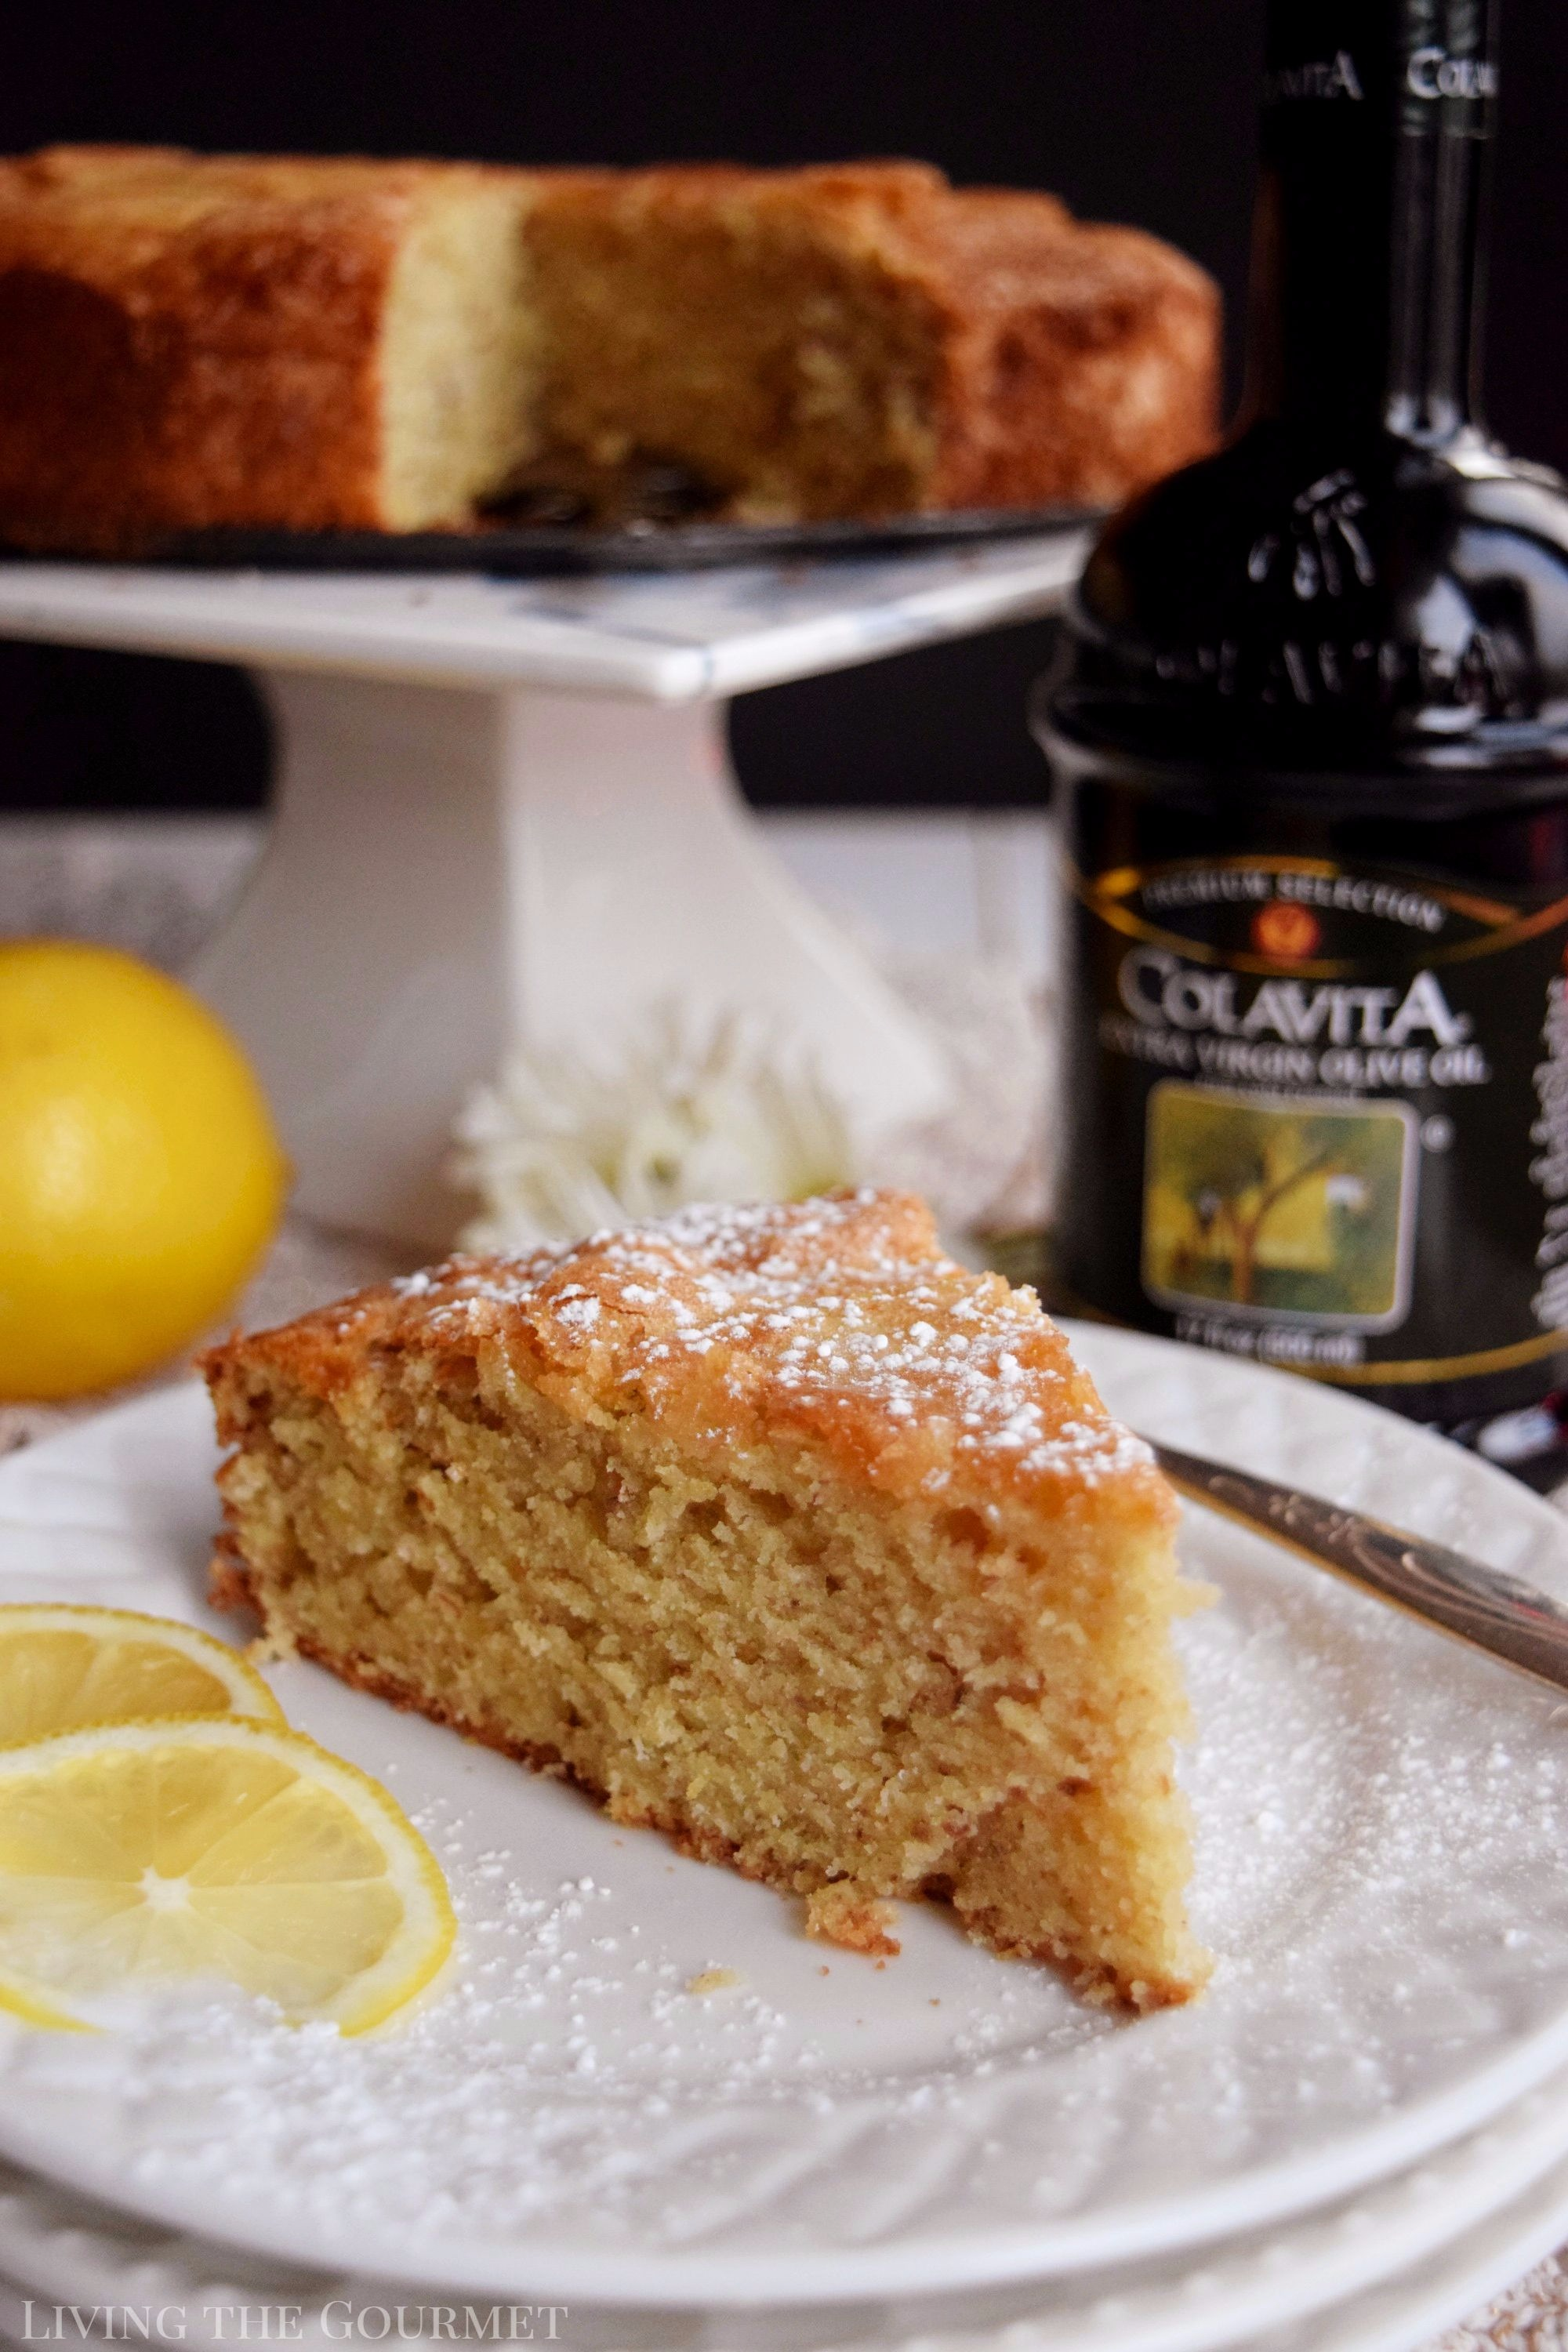 Take For Example The Olive Oil Cake, Which Is Now Being Hailed As A  Revelation In U0027minimalist Gourmetu0027 Baking. For Me, The Use Of Olive Oil In  Breads Or ...